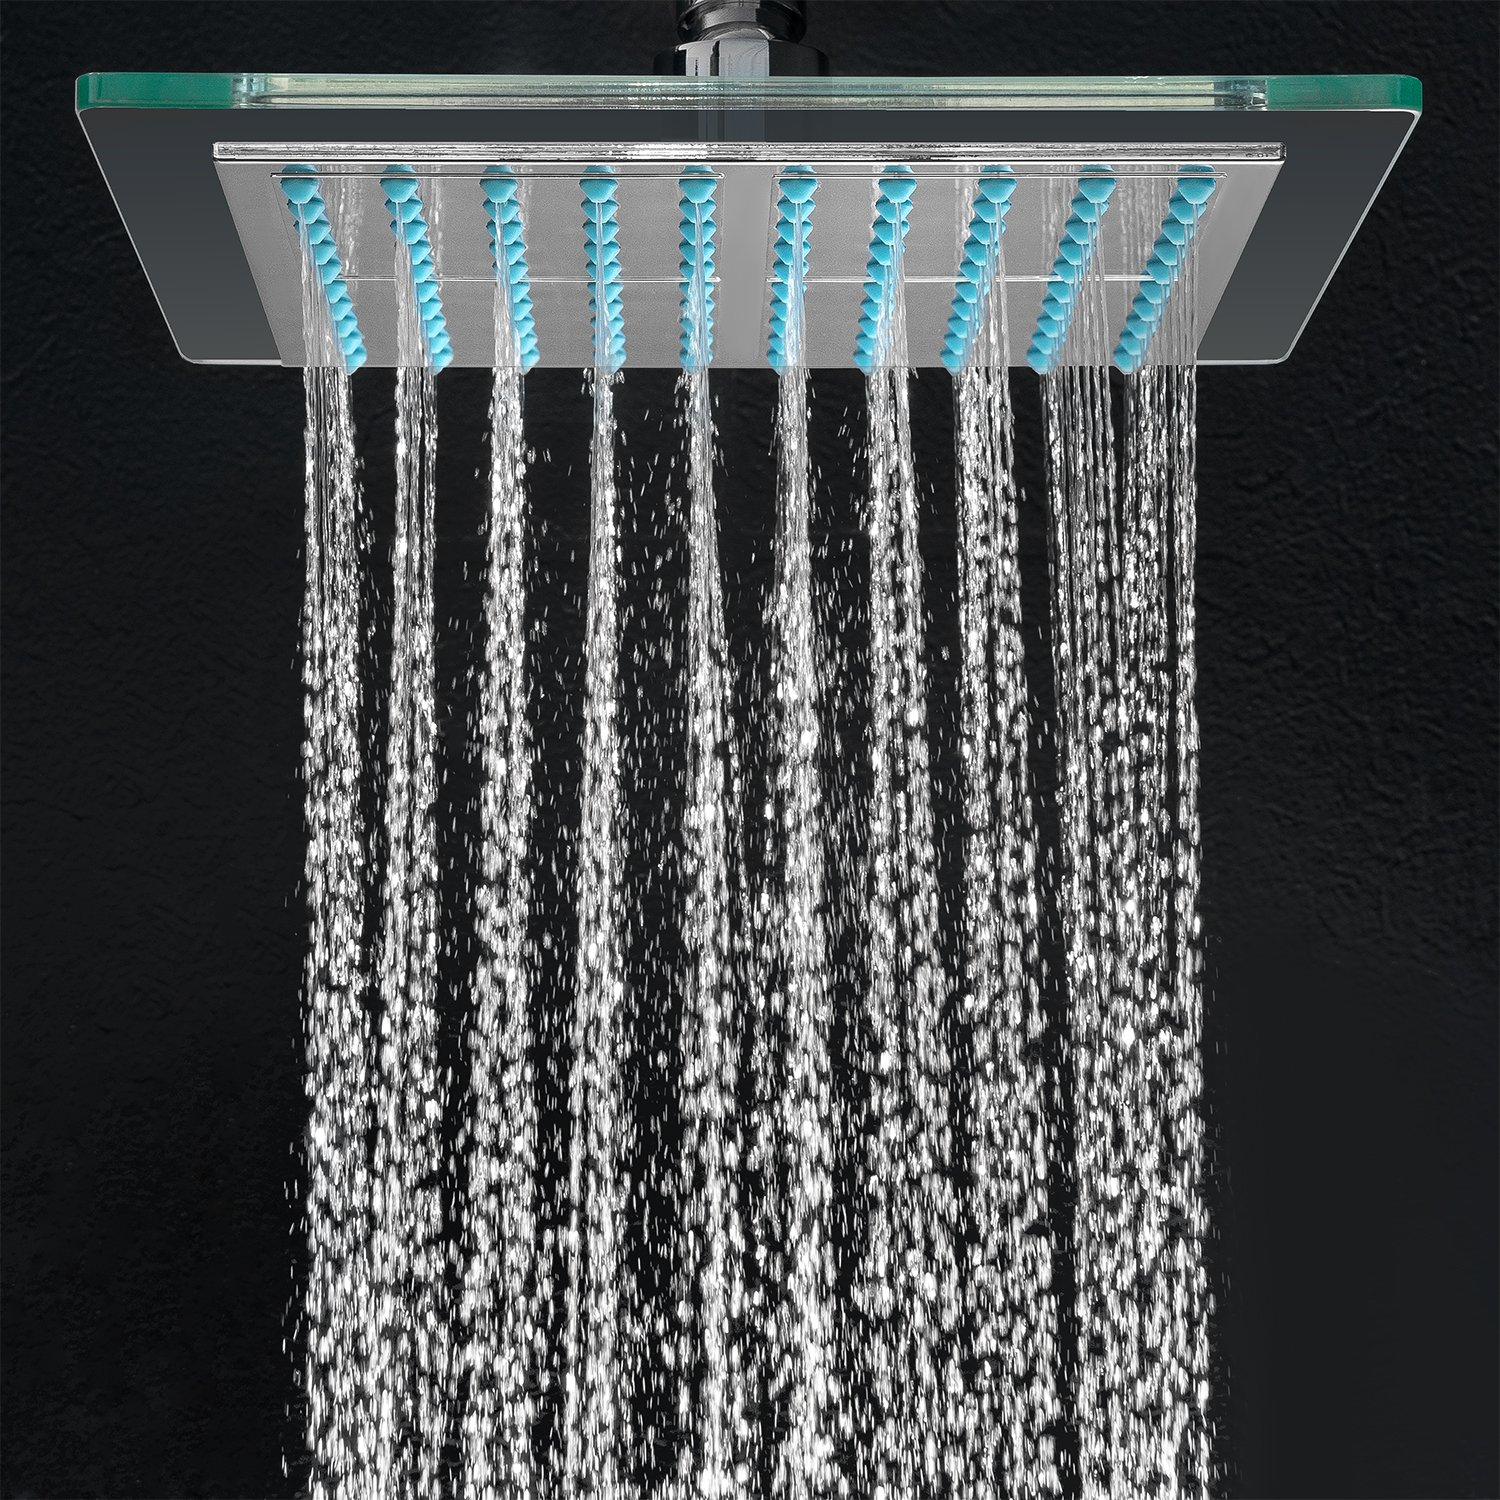 AKDY AZ-6021 Bathroom Chrome Shower Head, 8-inch - Fixed ...